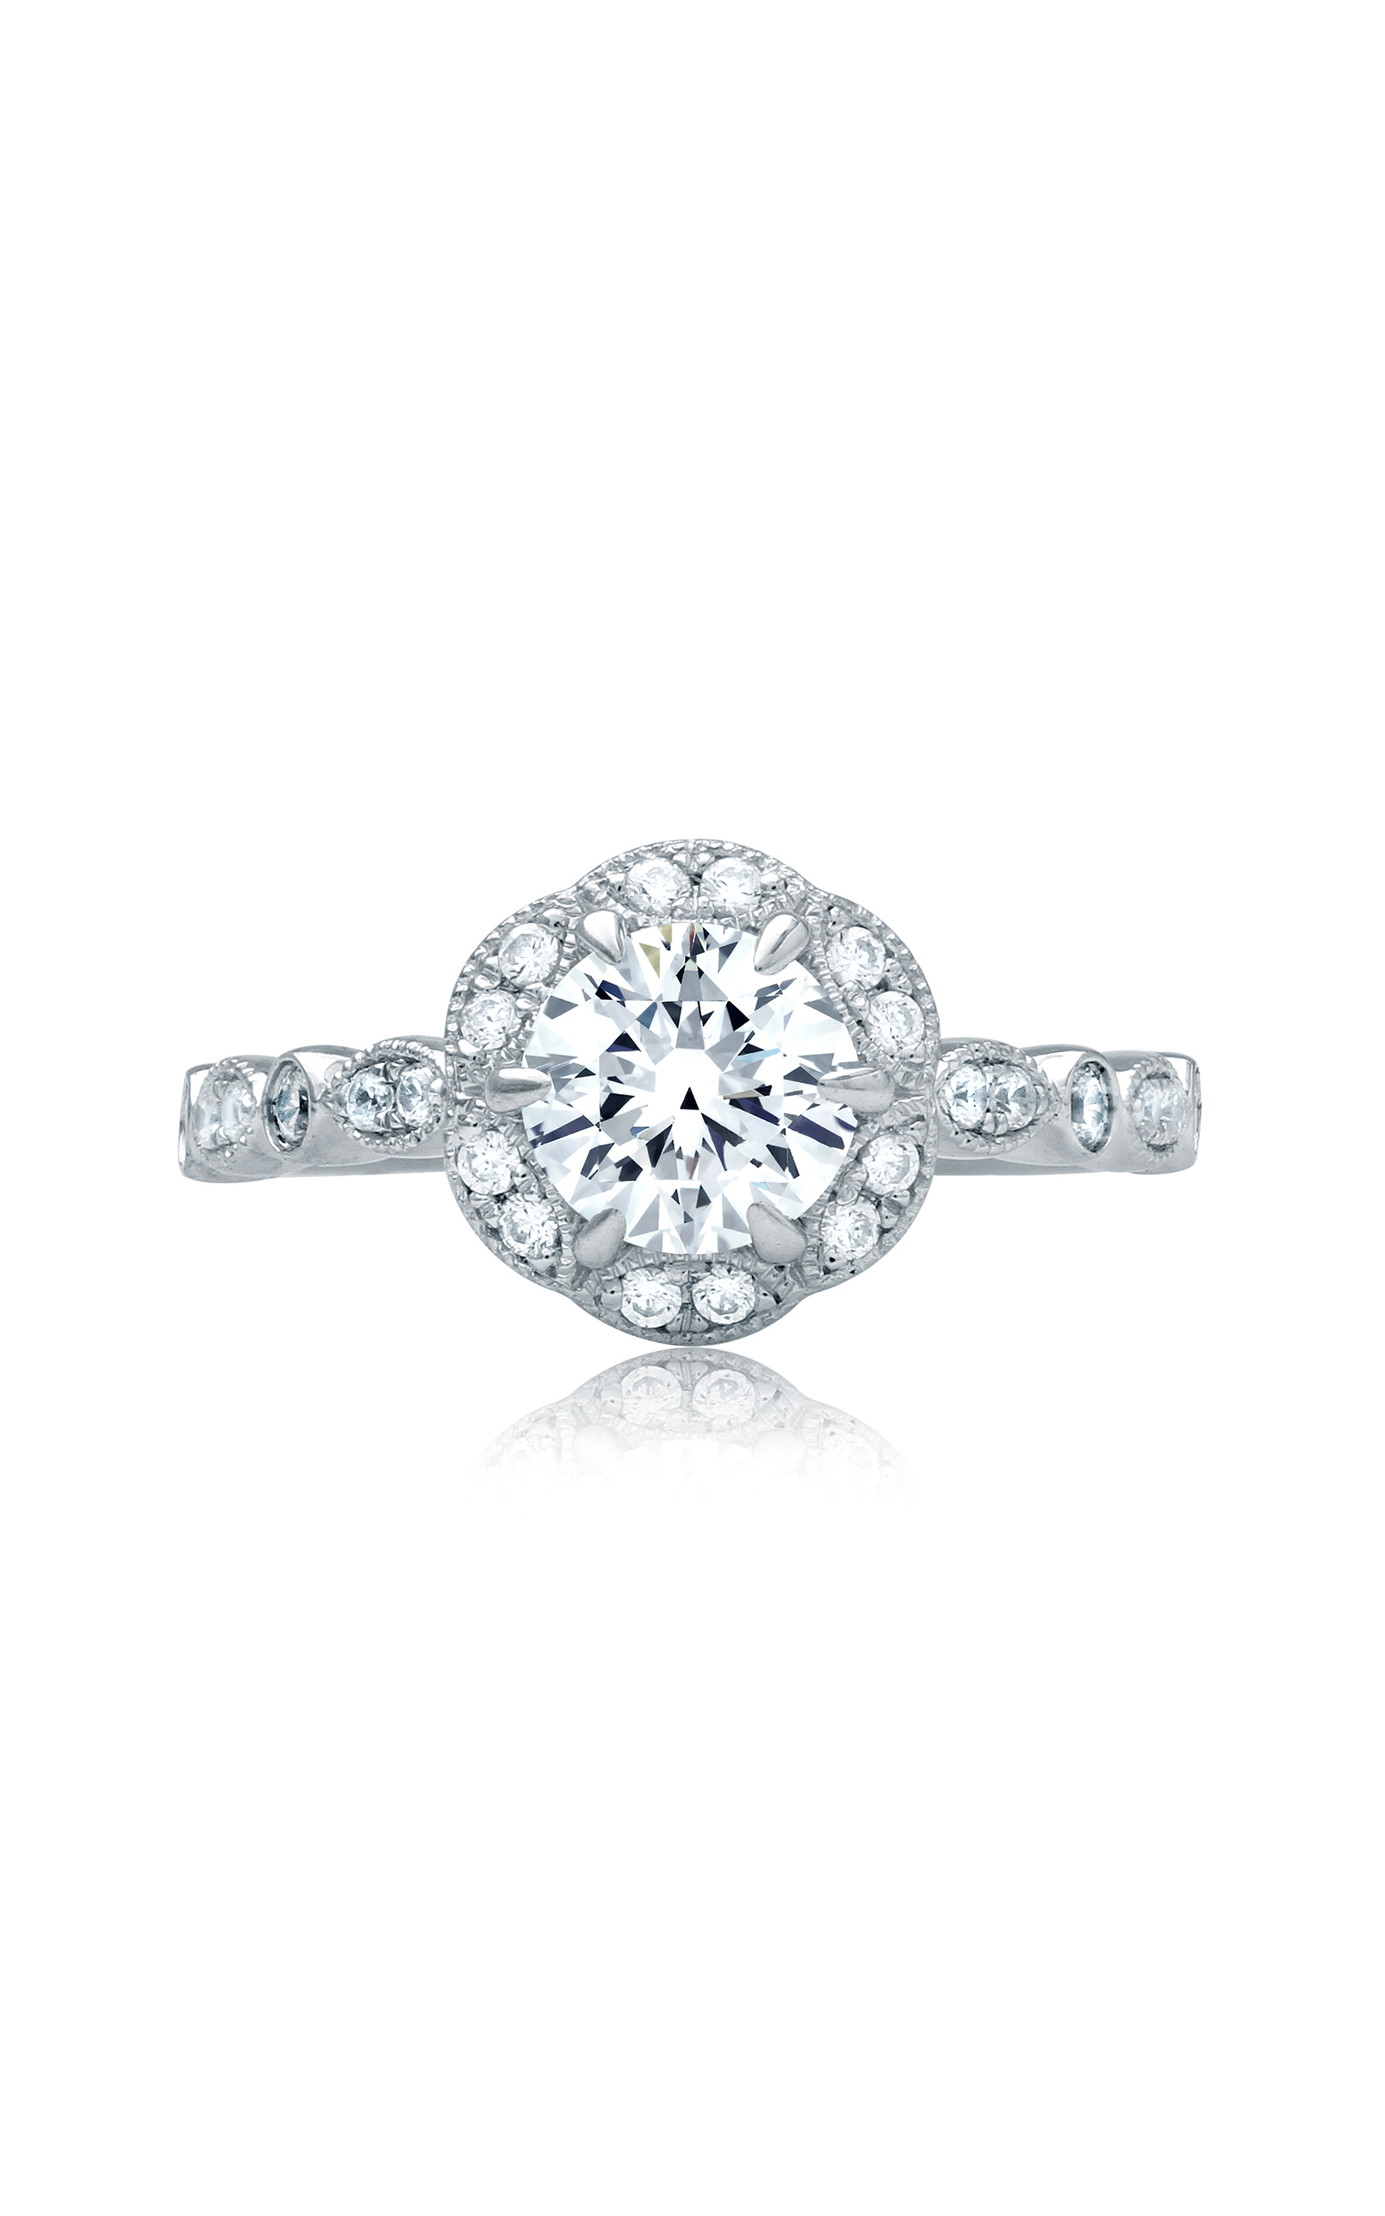 A.Jaffe Art Deco Engagement Ring MES828 product image